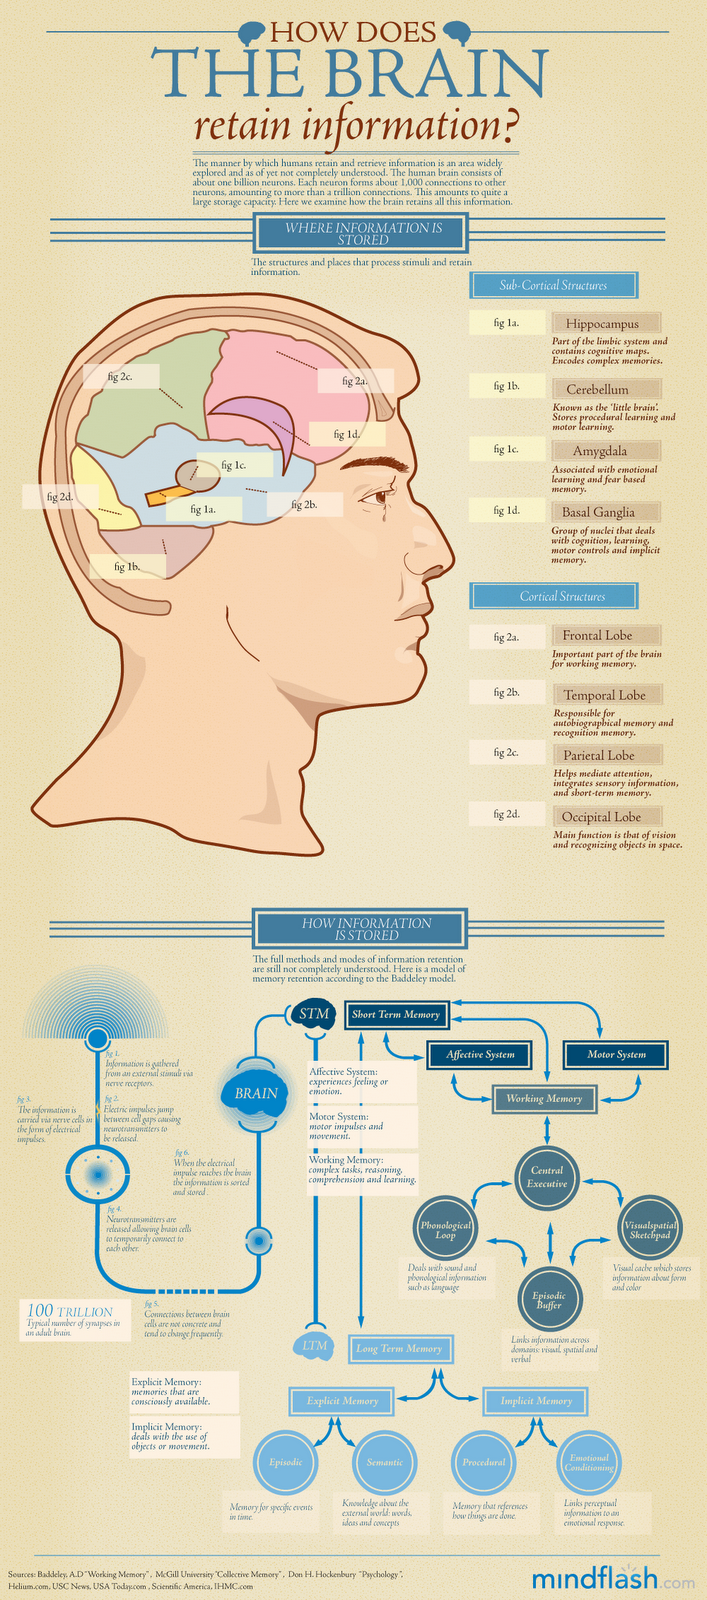 How the brain retains information